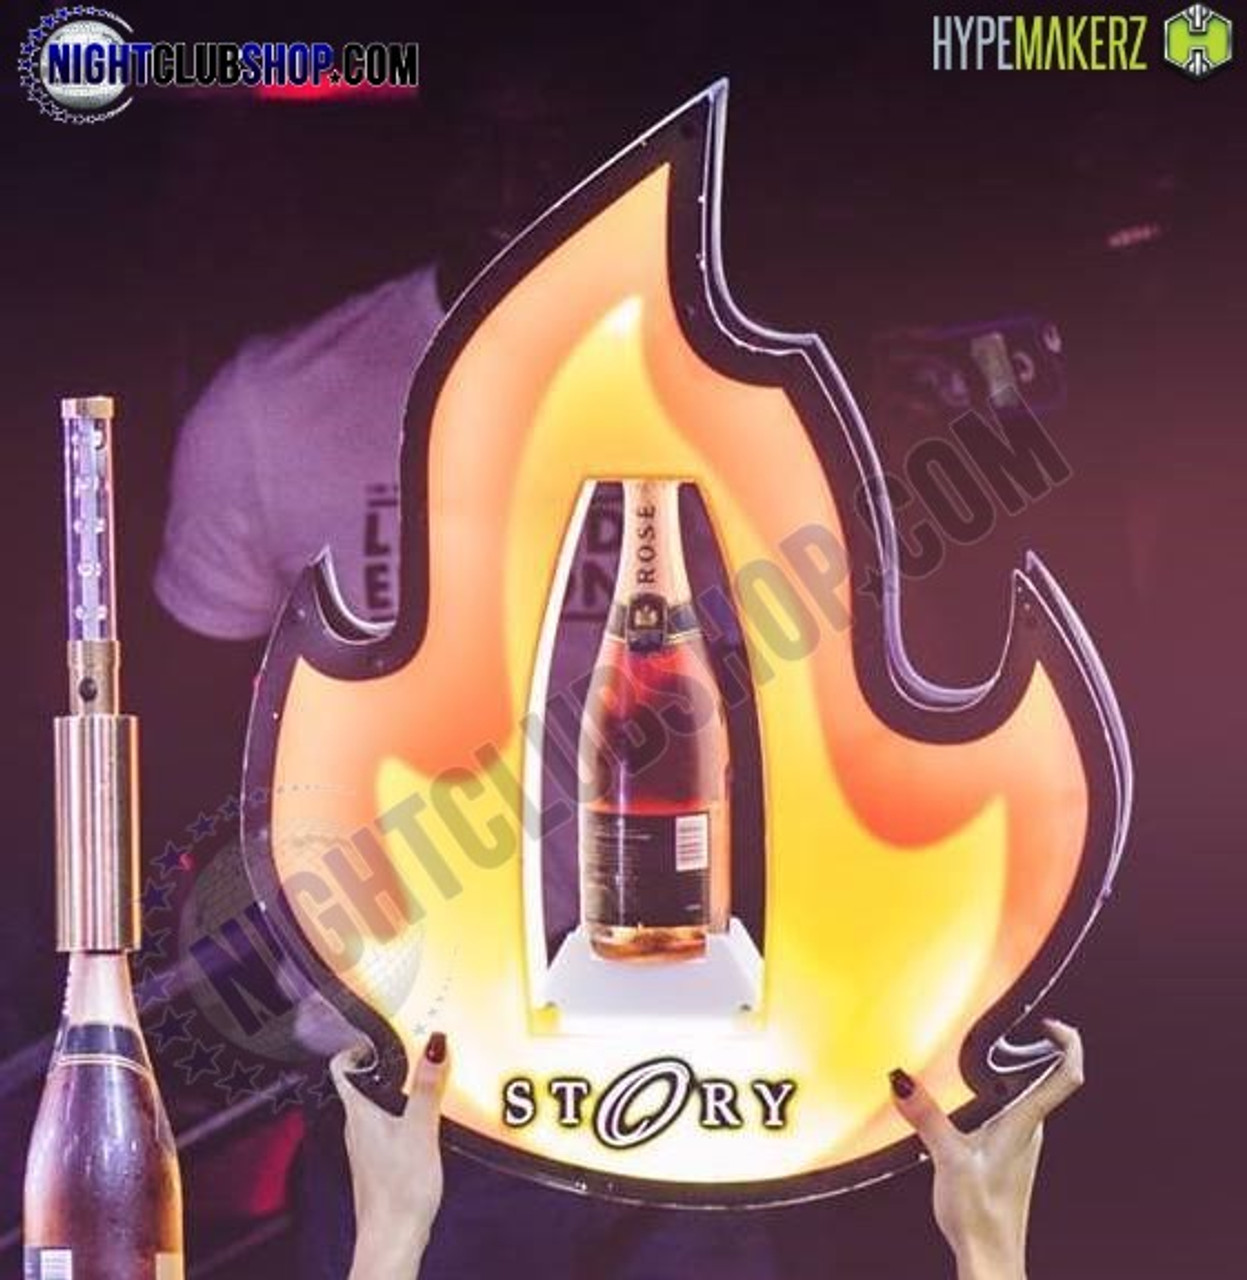 LED, Fire, Flame, Bottle, Presenter, Strobe, Baton, Liquor, Holder, VIP, Huge, Enormous, Gigantic